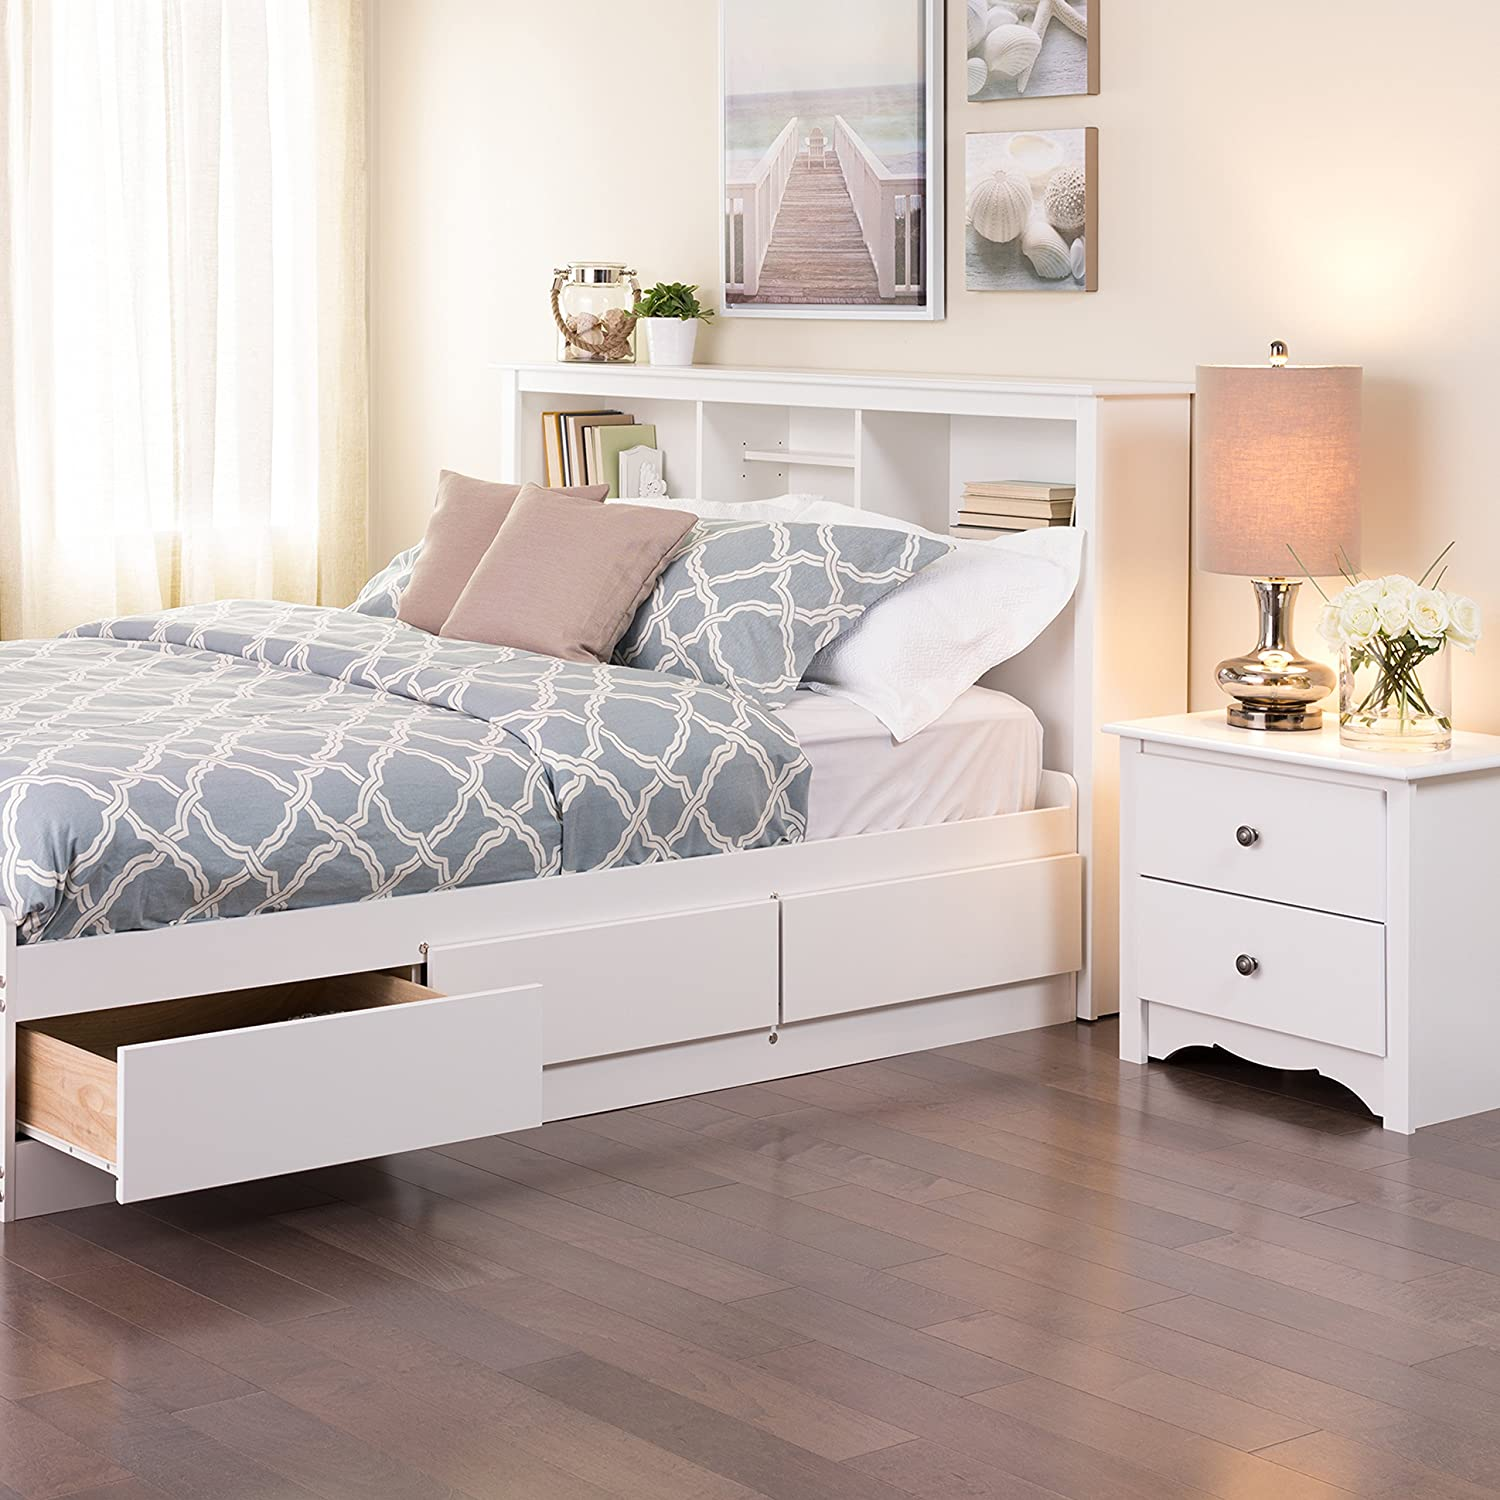 Amazon.com - Prepac Monterey White Queen Storage Headboard ...